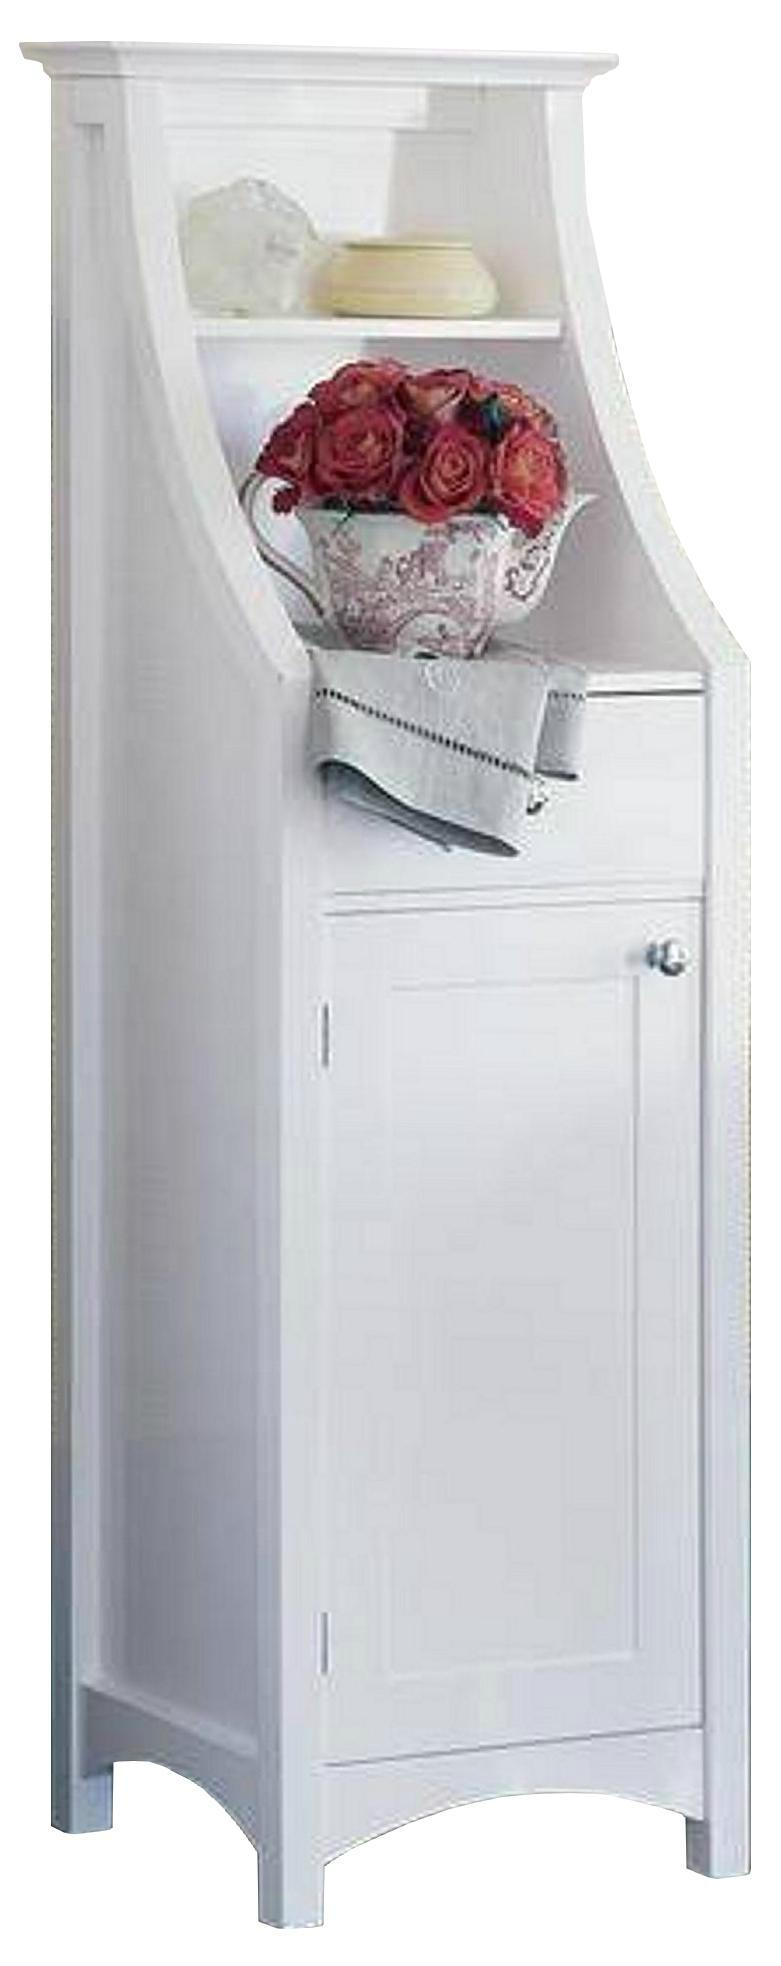 towel cabinet for bathroom designer one door bathroom linen towel tower cabinet wd 20998